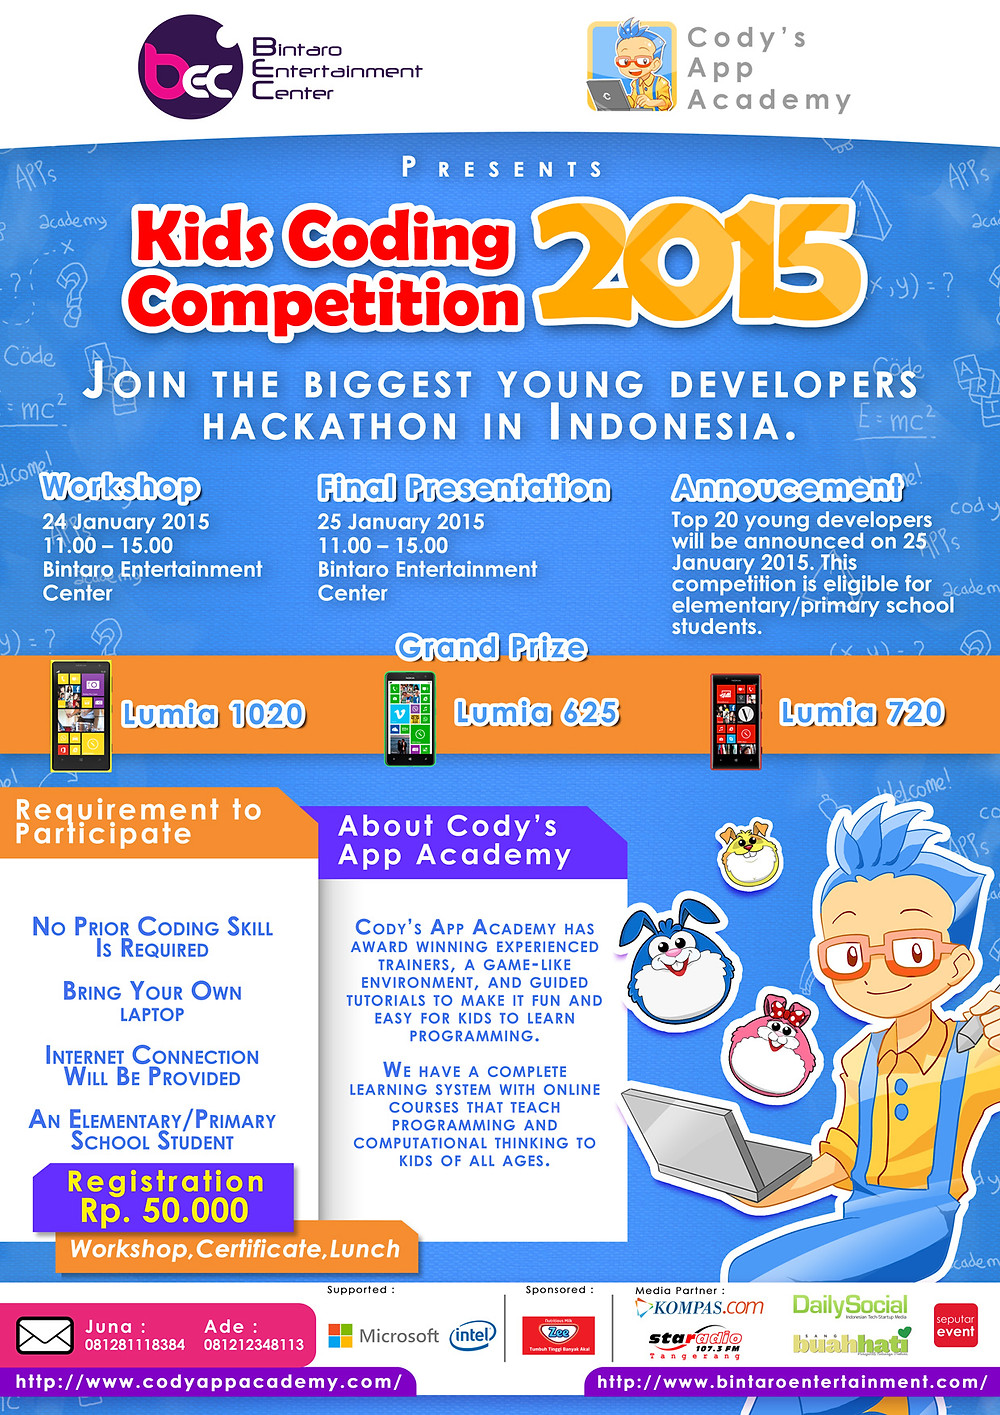 Kids Coding Competition 2015.jpg